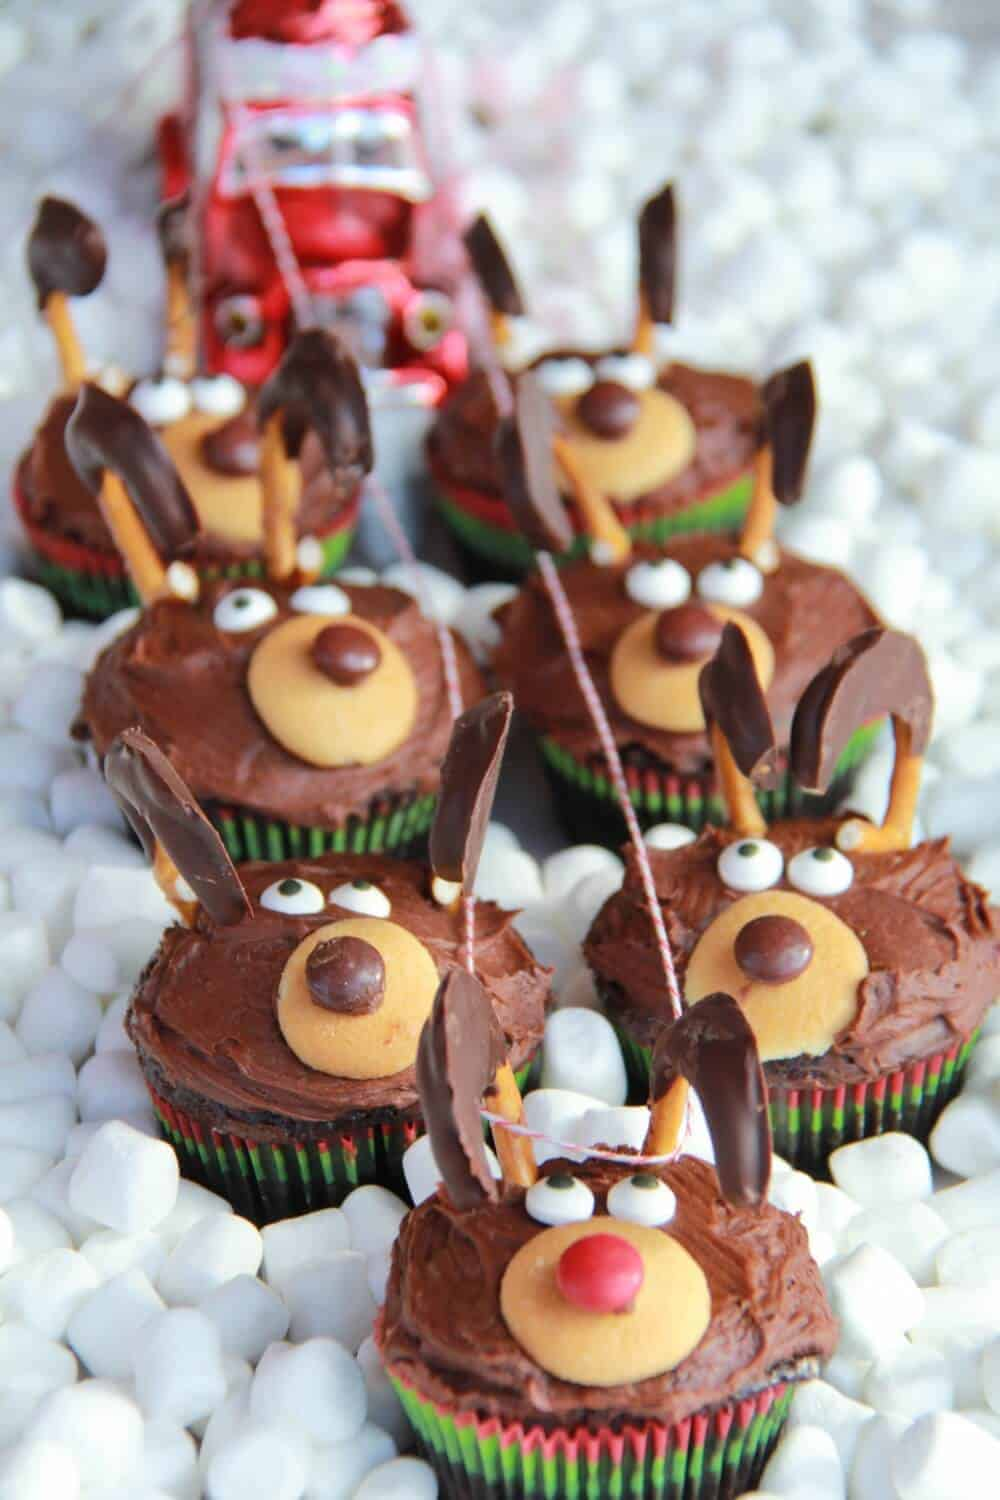 Christmas Themed Cakes Pictures.Chocolate Reindeer Cupcakes